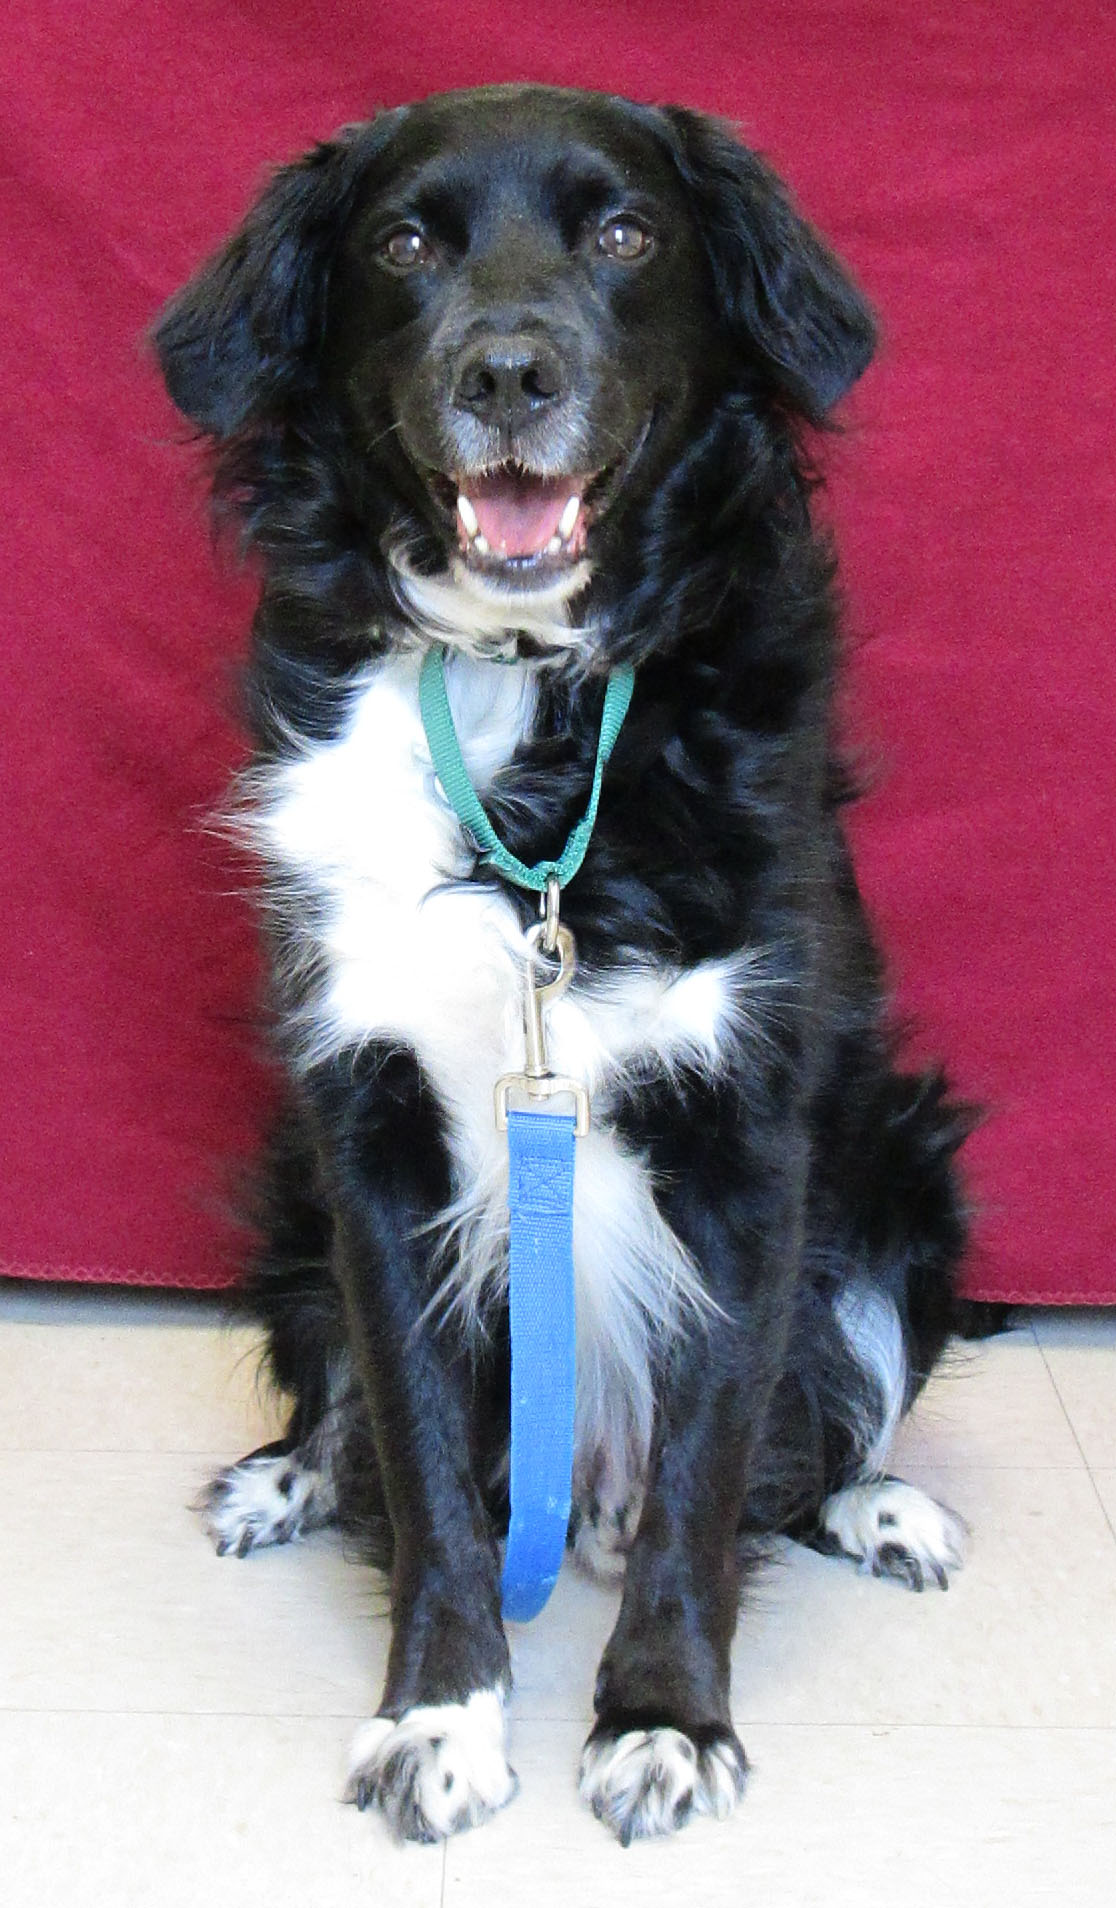 Snickers is a 9-year-old Lab/Springer mix. He is a very nice boy who needs apatient, dog-savvy home. If his home has another dog he would prefer it to be a calmer, quieter dog who is less bold. What he would really love is to be your one and only! If the home has children we are requiring the children to be teens or older.